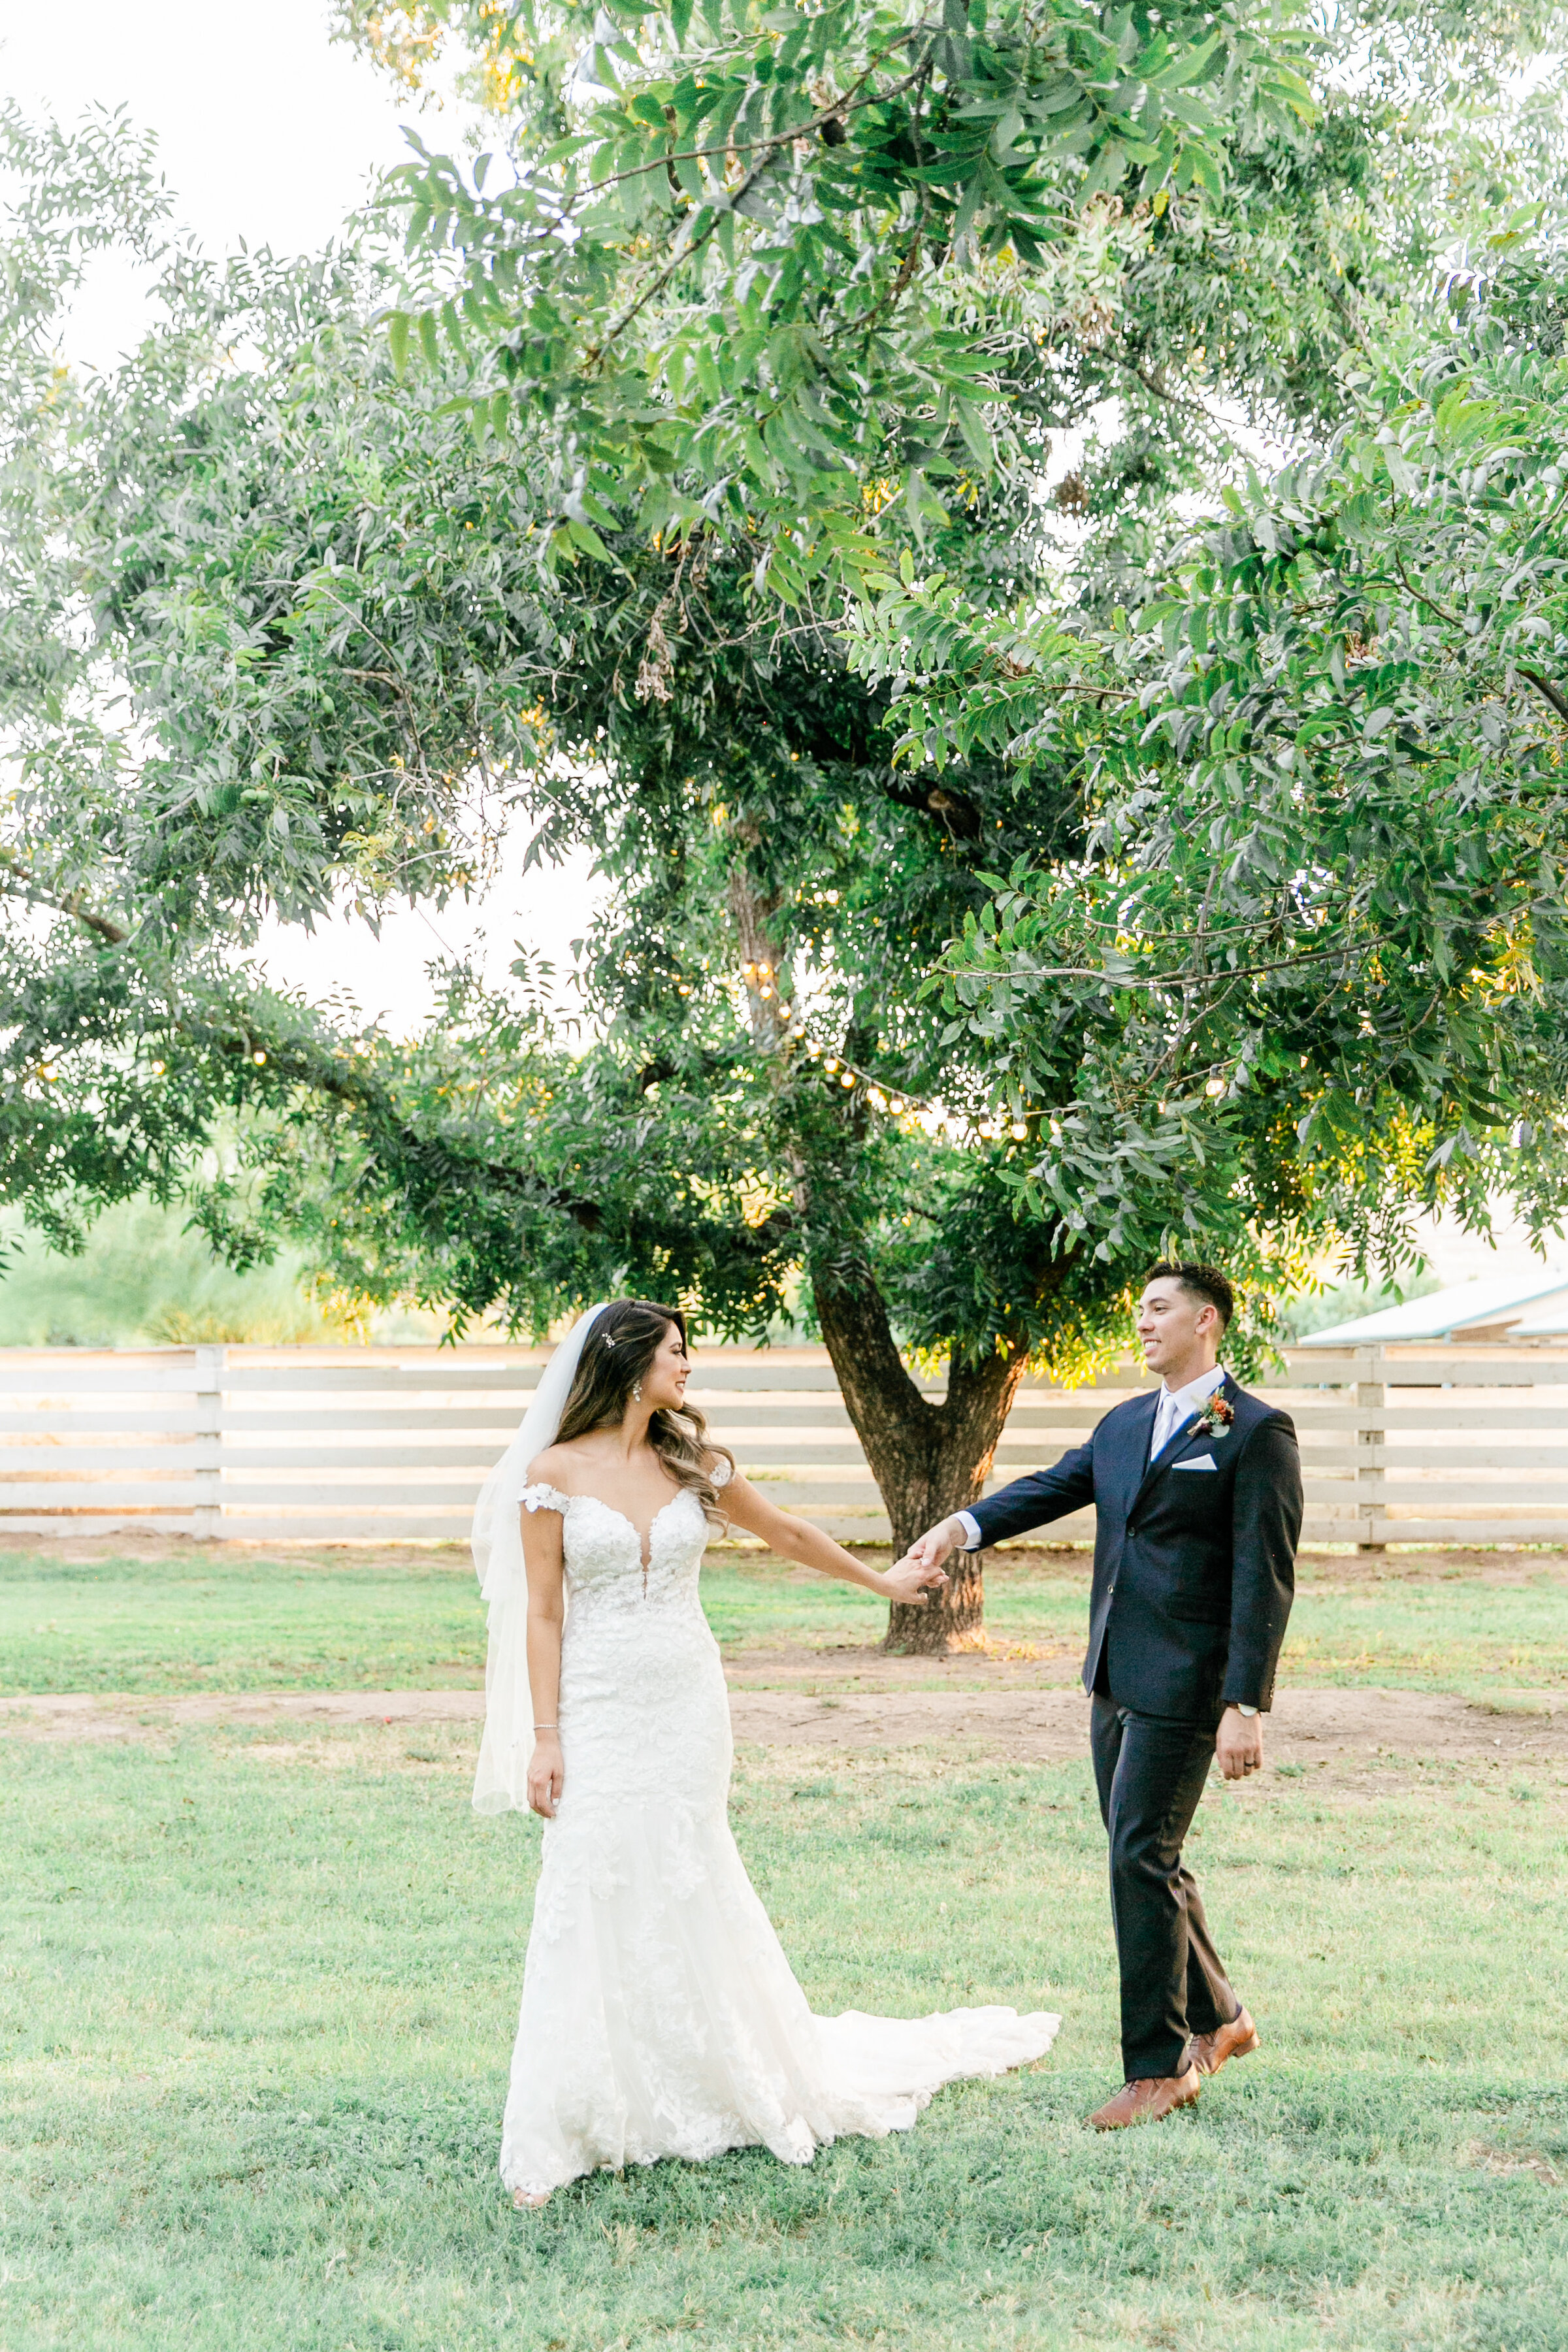 Karlie Colleen Photography - Phoenix Arizona - Farm At South Mountain Venue - Vanessa & Robert-604